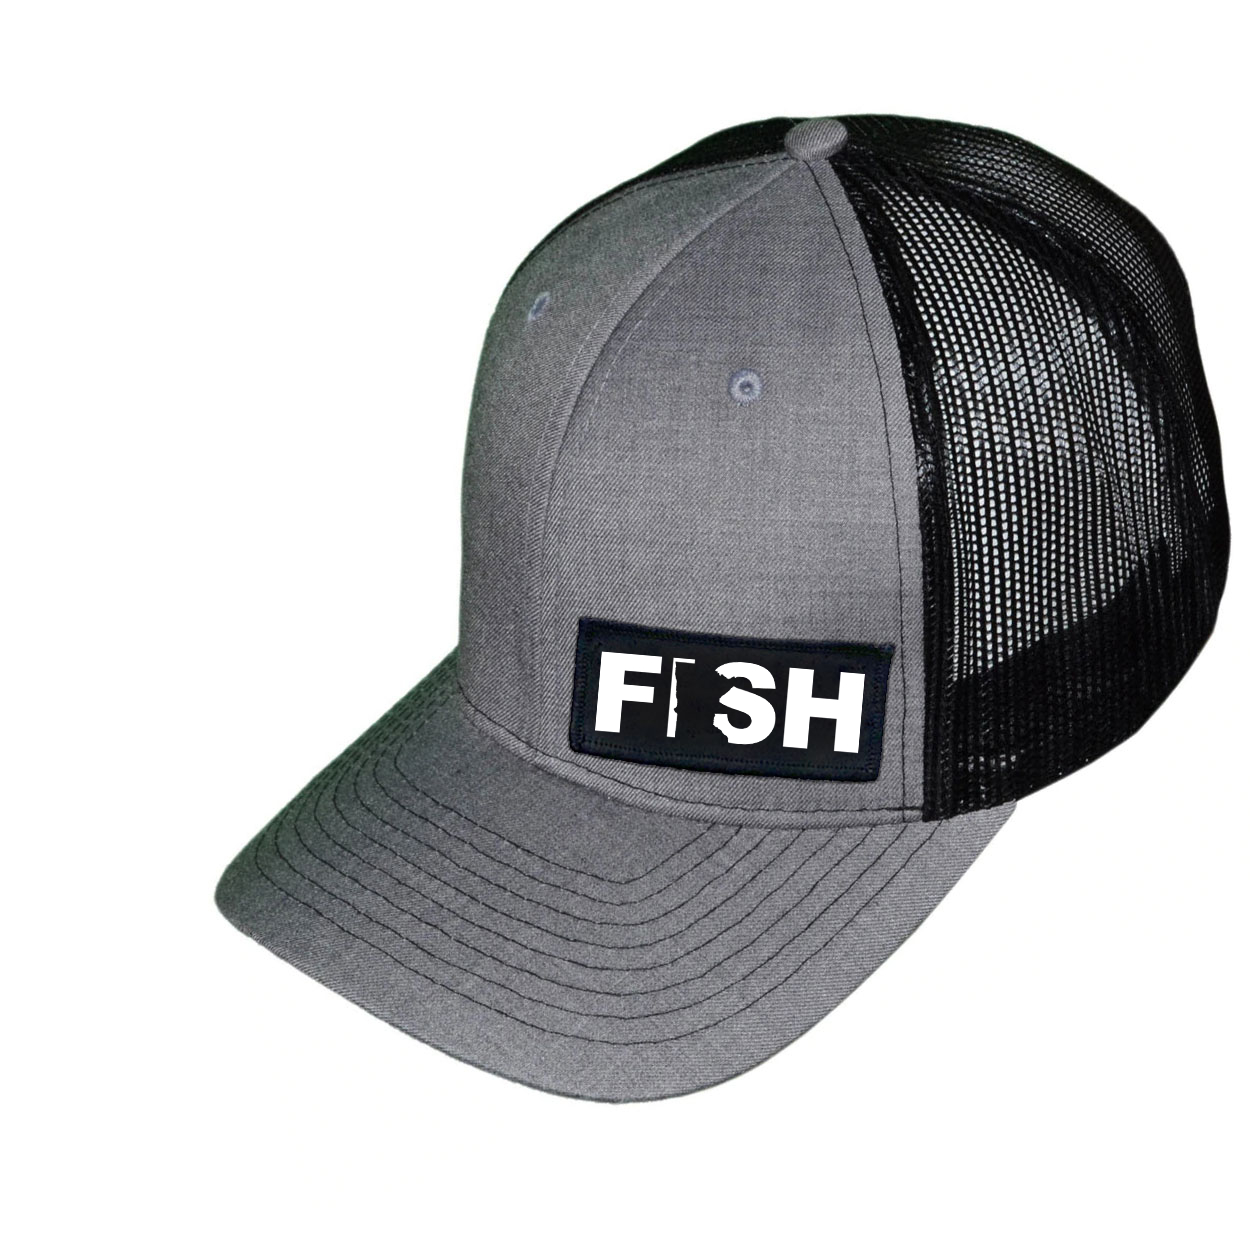 Fish Minnesota Night Out Woven Patch Snapback Trucker Hat Heather Gray/Black (White Logo)